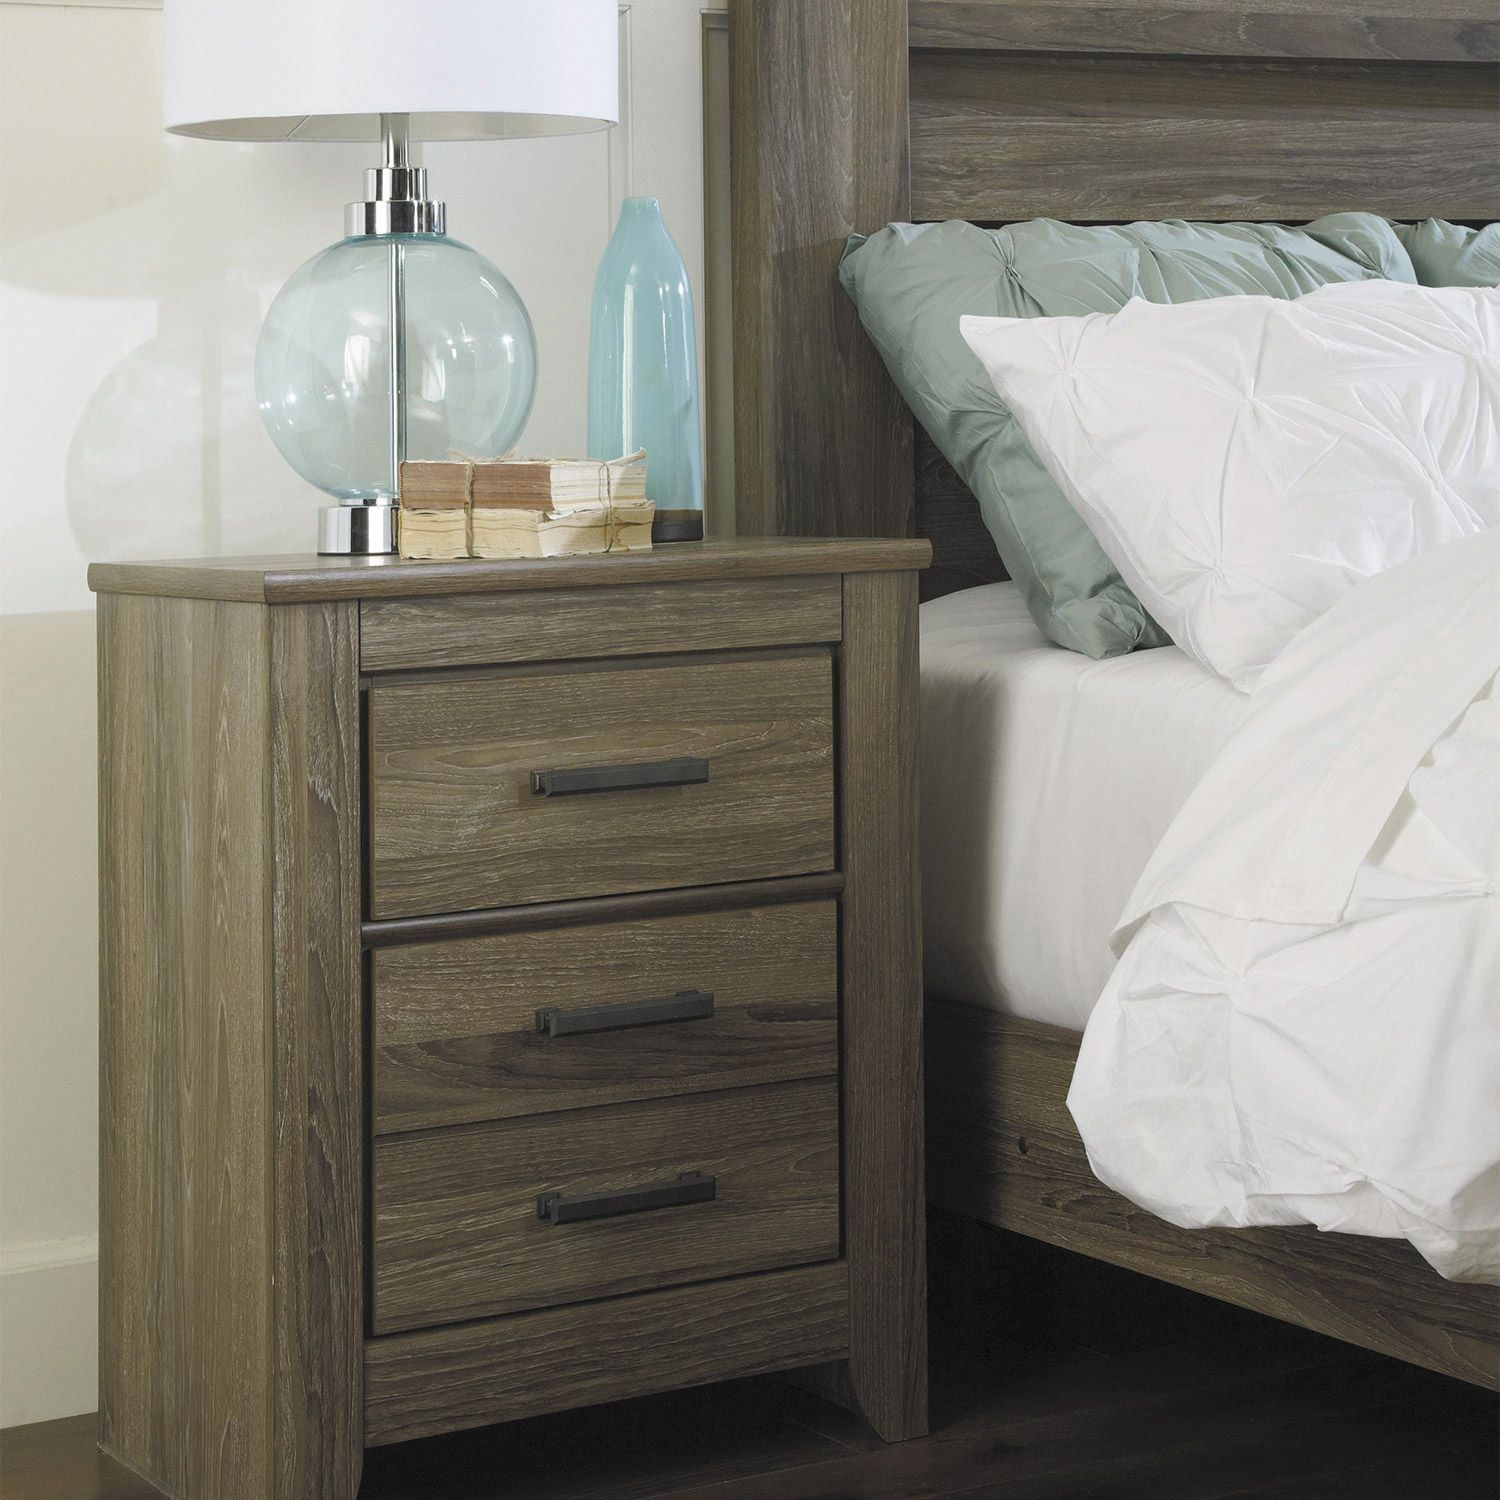 American Signature Furniture Going Out Of Business: Furniture, Bedroom Furniture, Signature